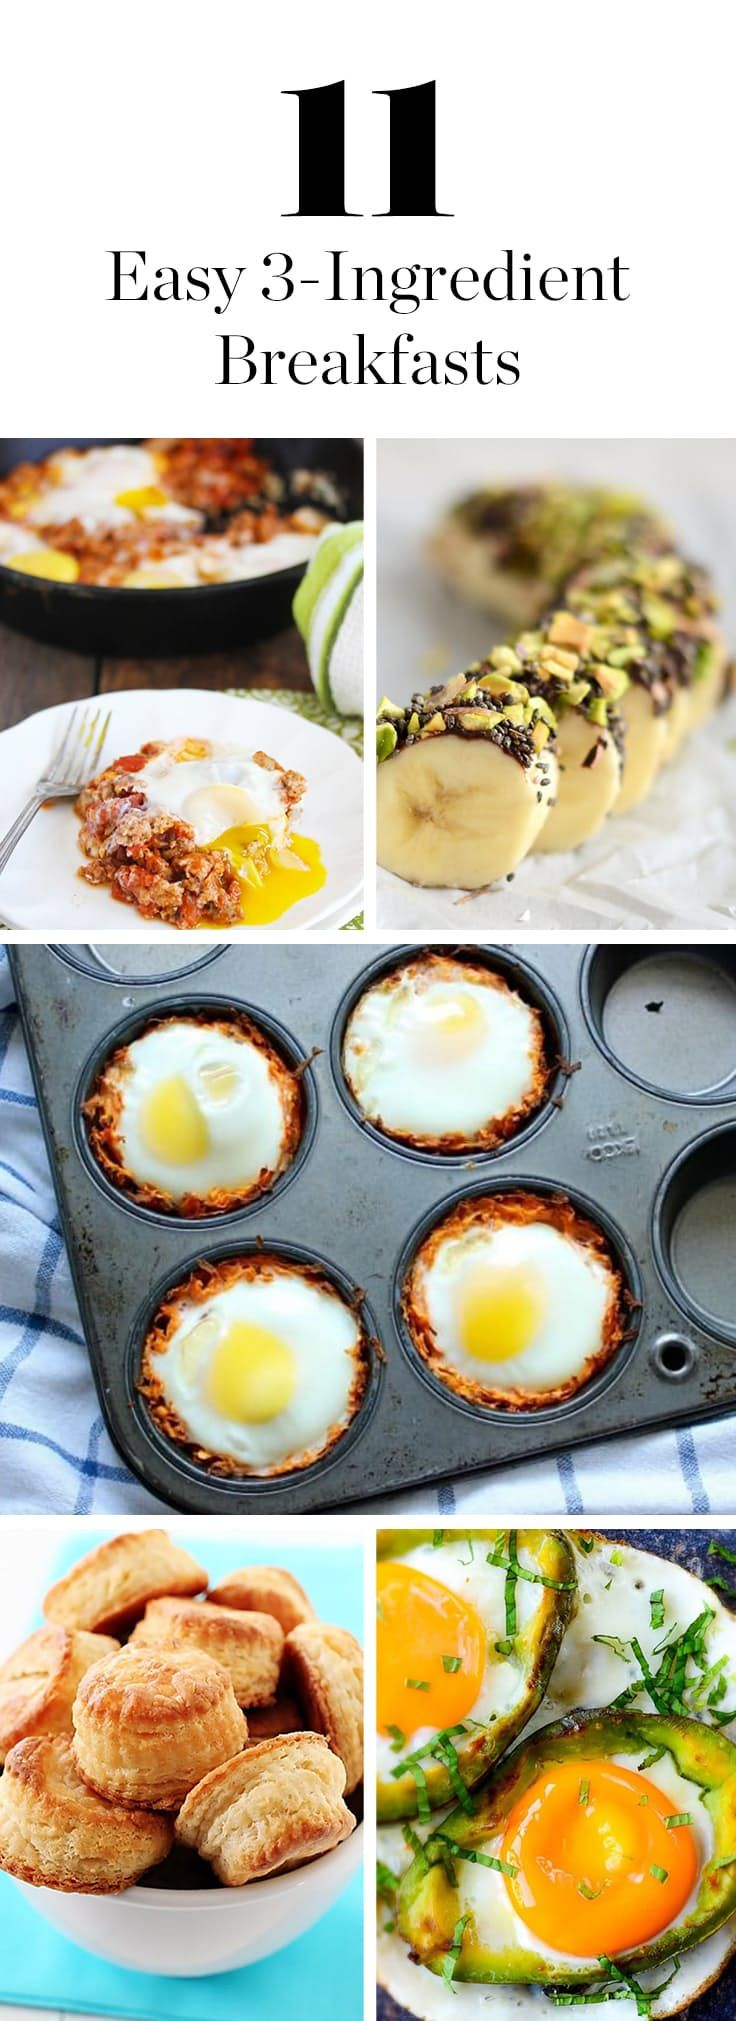 11 Easy 3-Ingredient Breakfasts You Can Whip Up in No Time via @PureWow